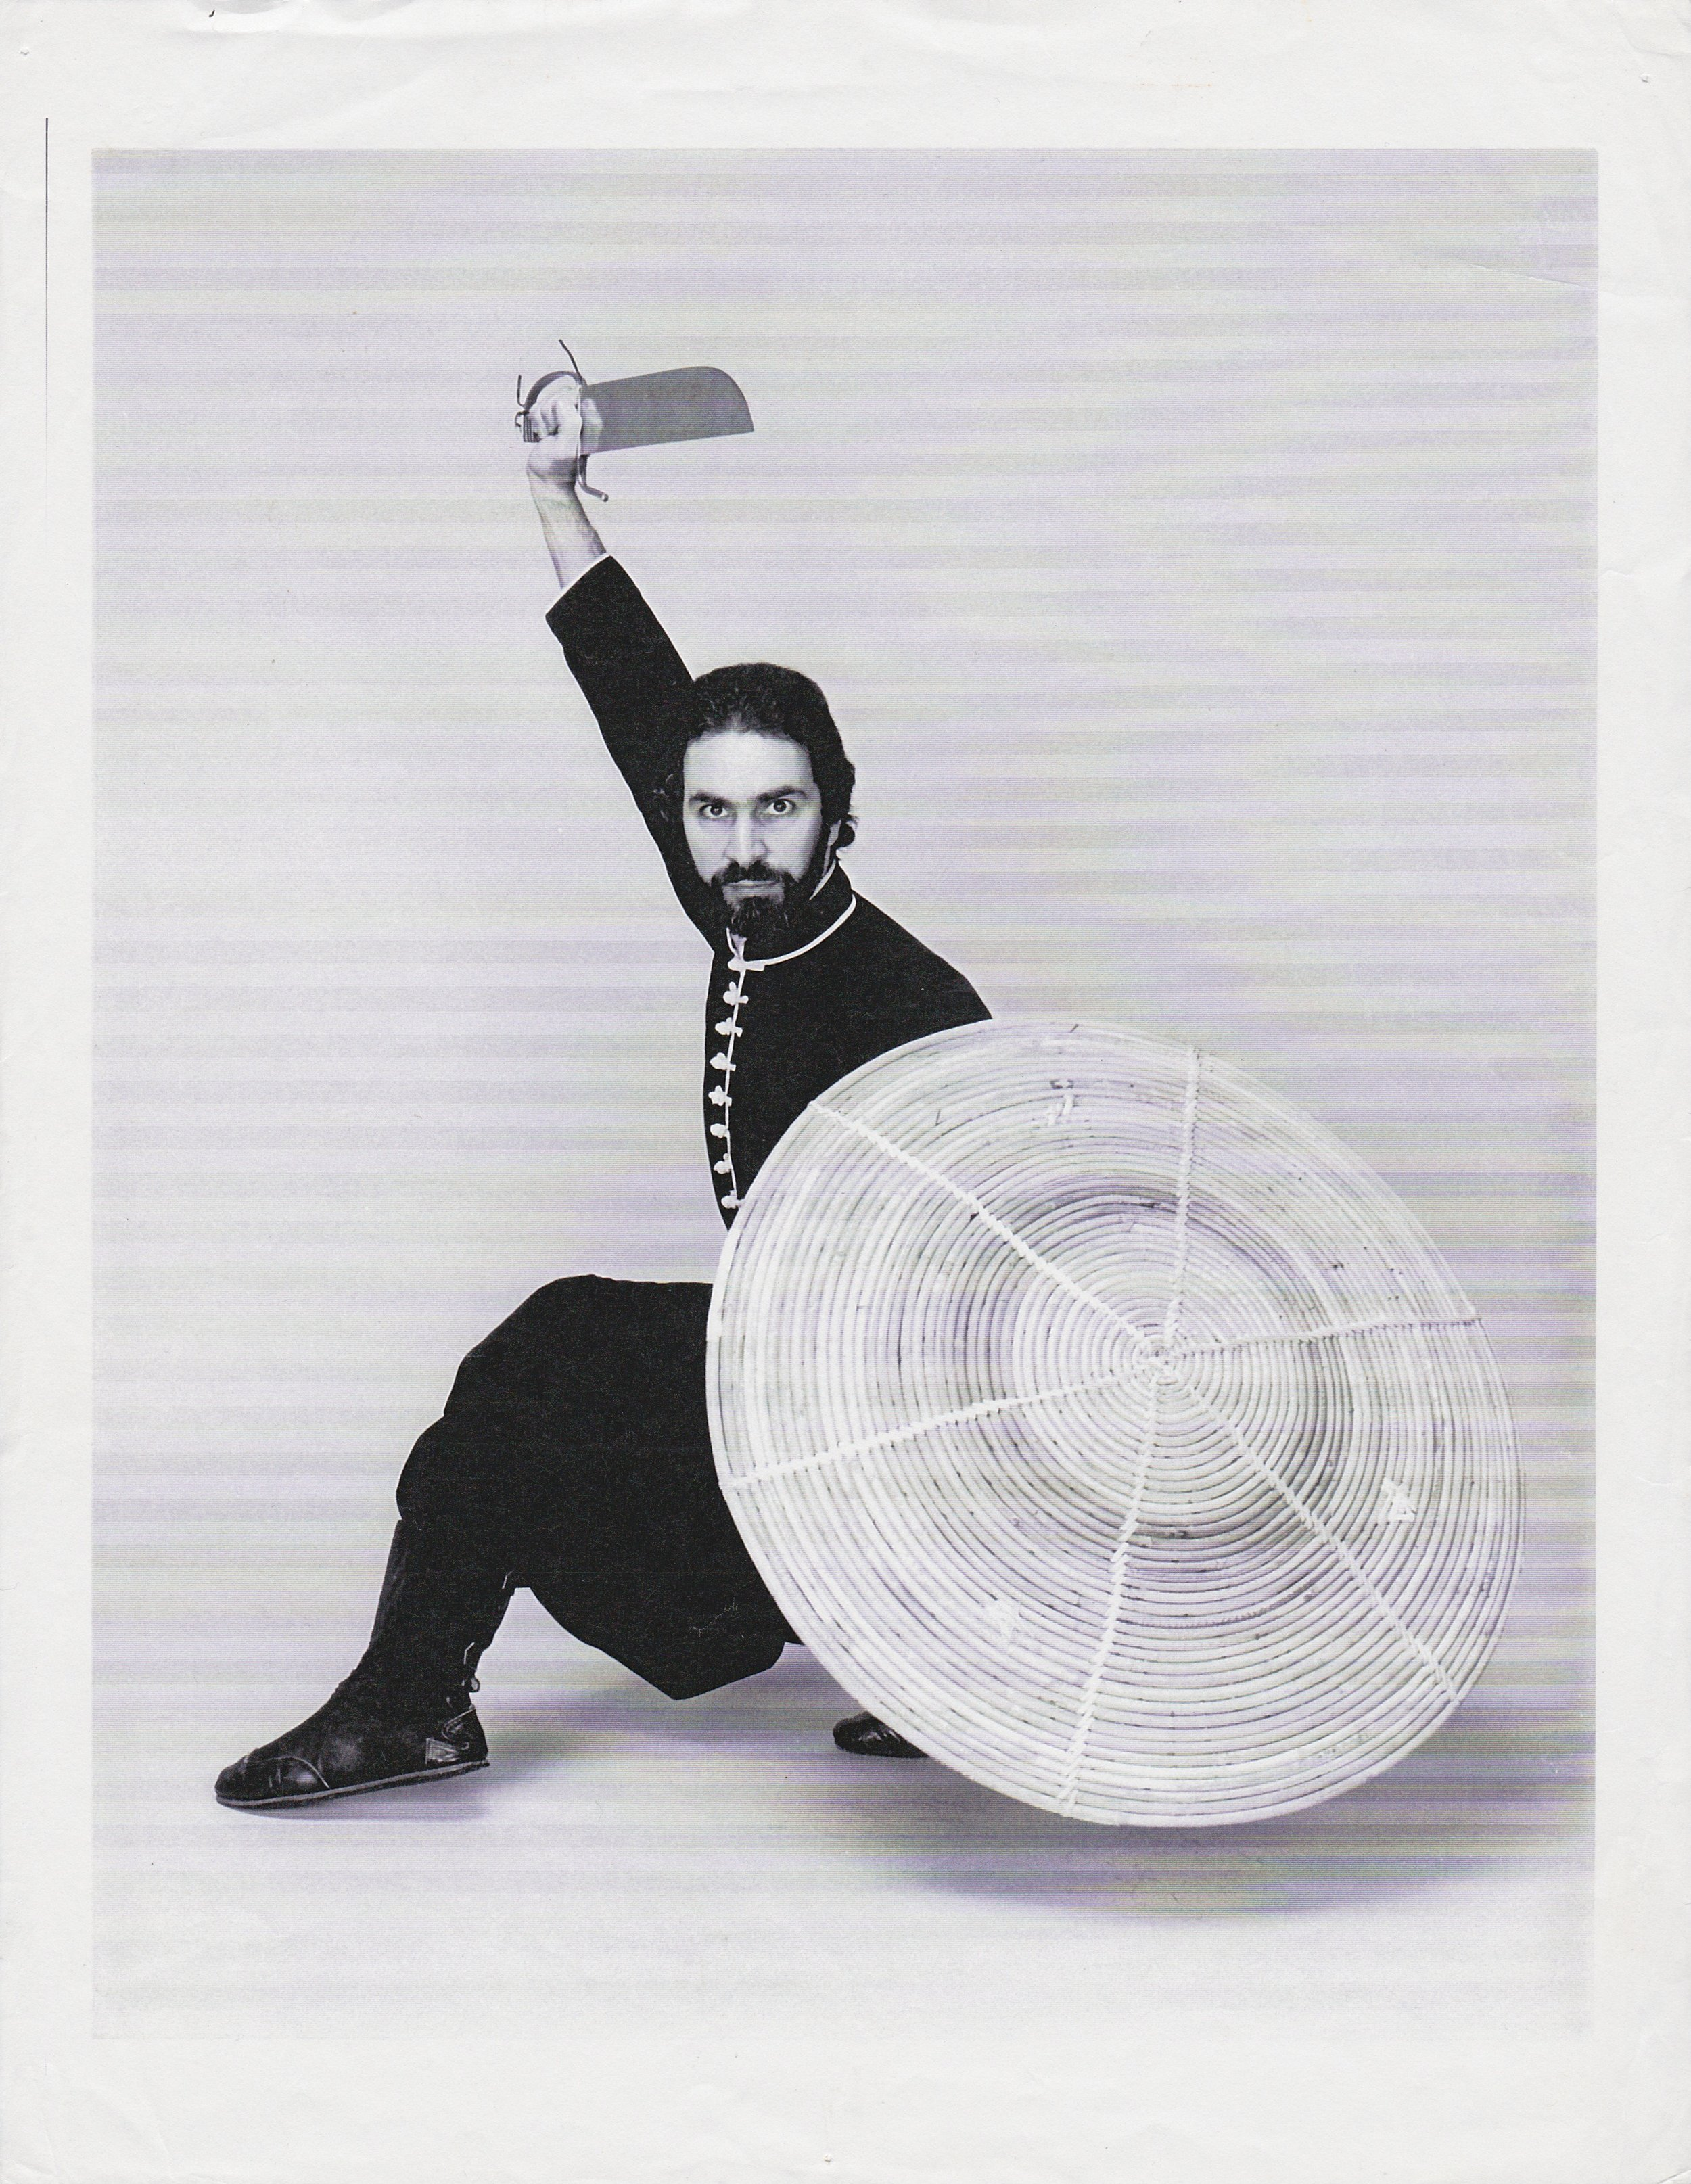 Master Paolillo with shield and butterfly sword, late 1970s